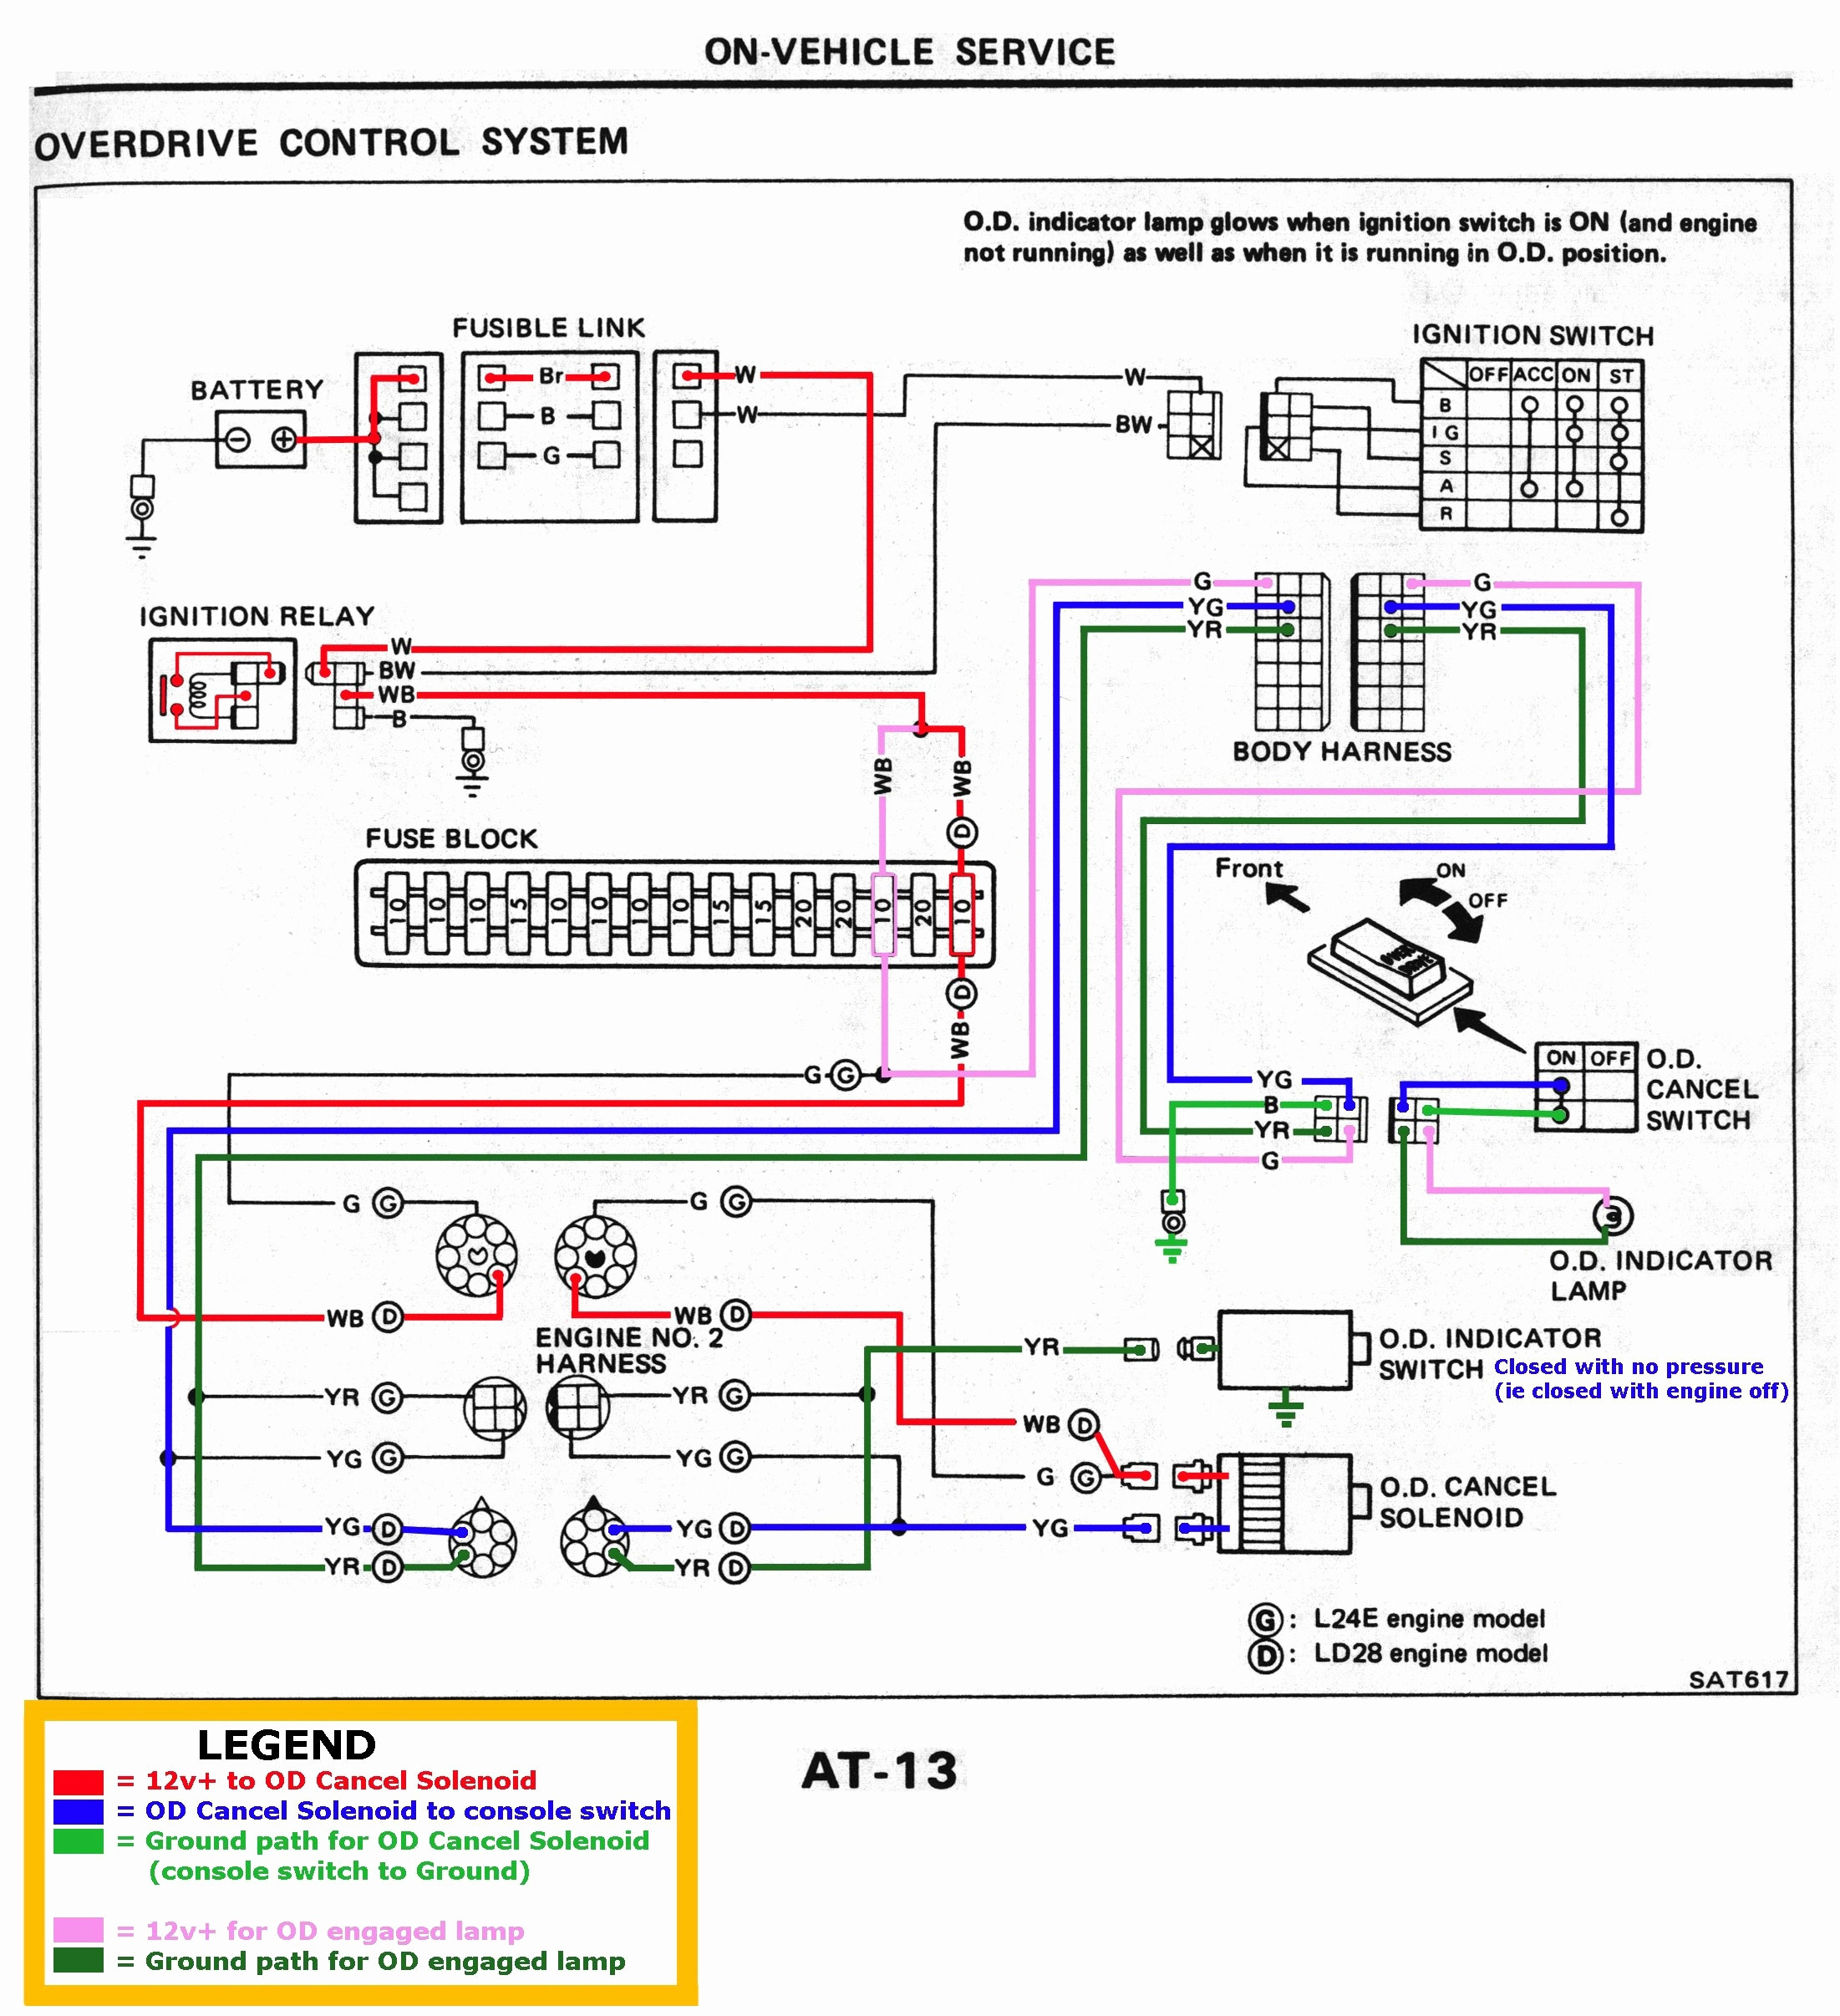 square d pressure switch wiring diagram Download-Square D Air pressor Pressure Switch Wiring Diagram New Wiring Diagram Square D Pressure Switch Wiring Diagram New 2-d